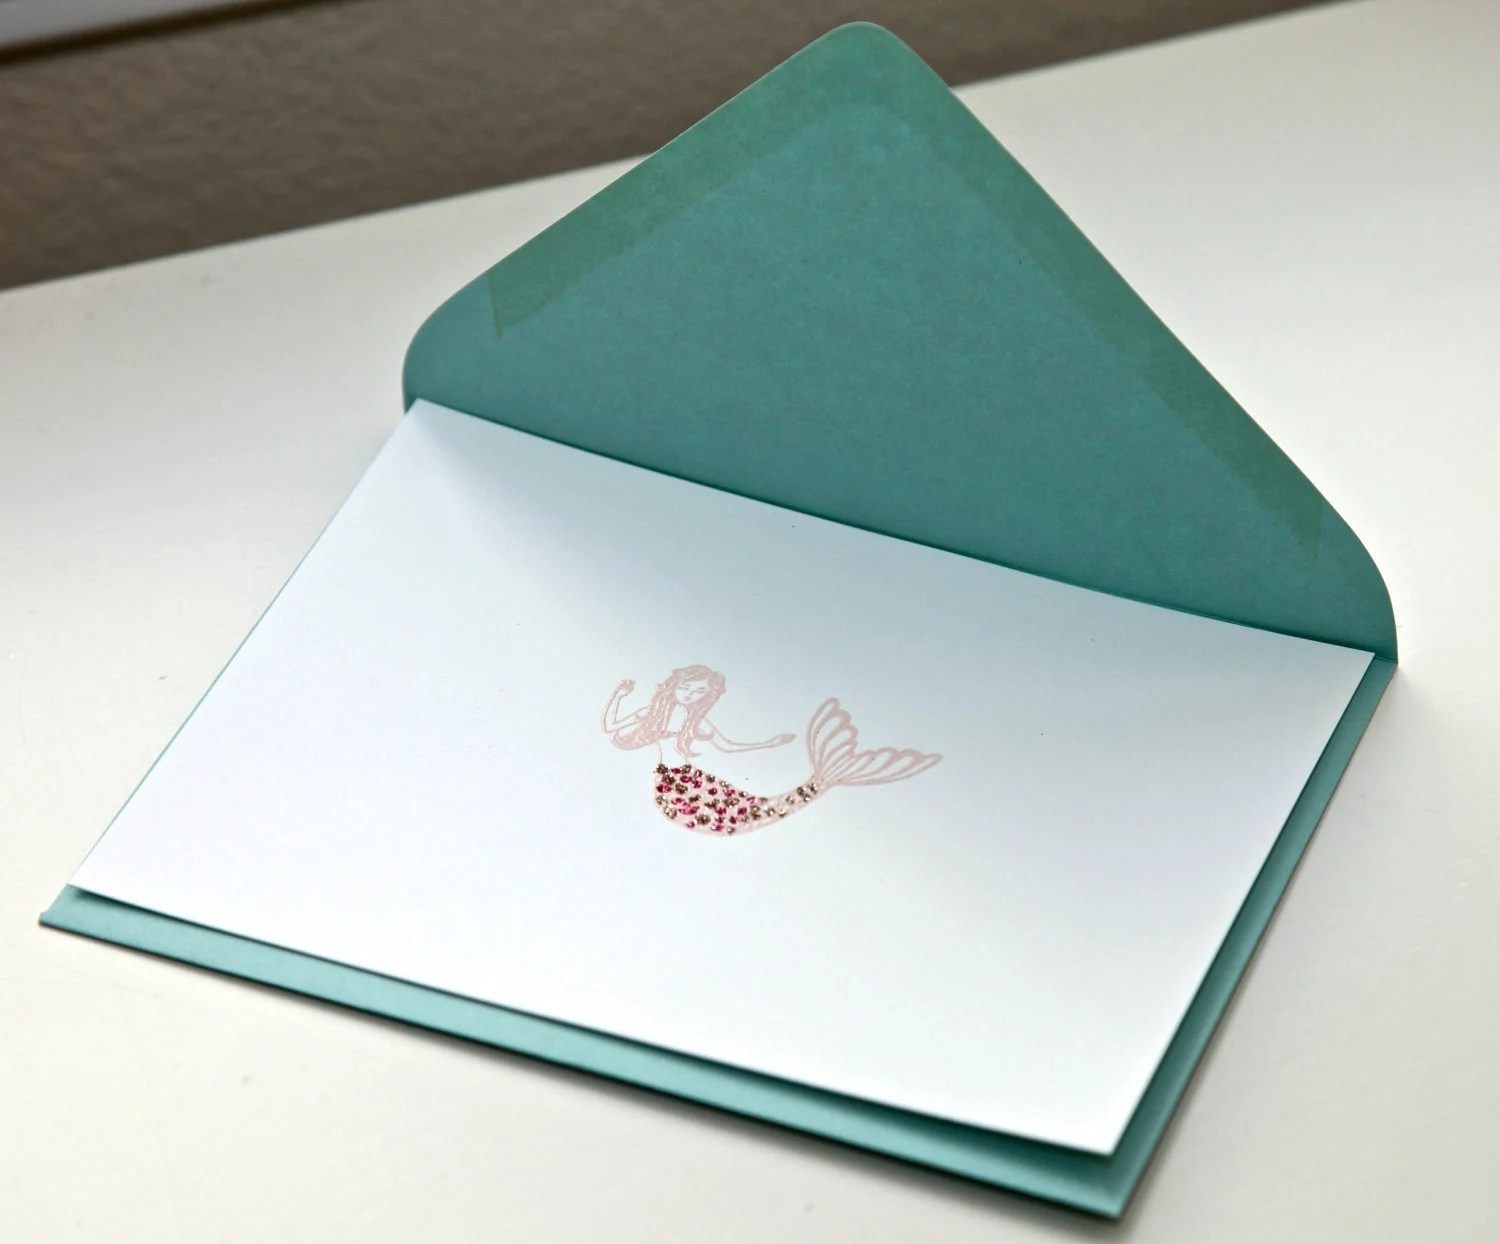 6 Embossed Mermaid Cards with Envelopes -  Stationery Set - PersianLaundry